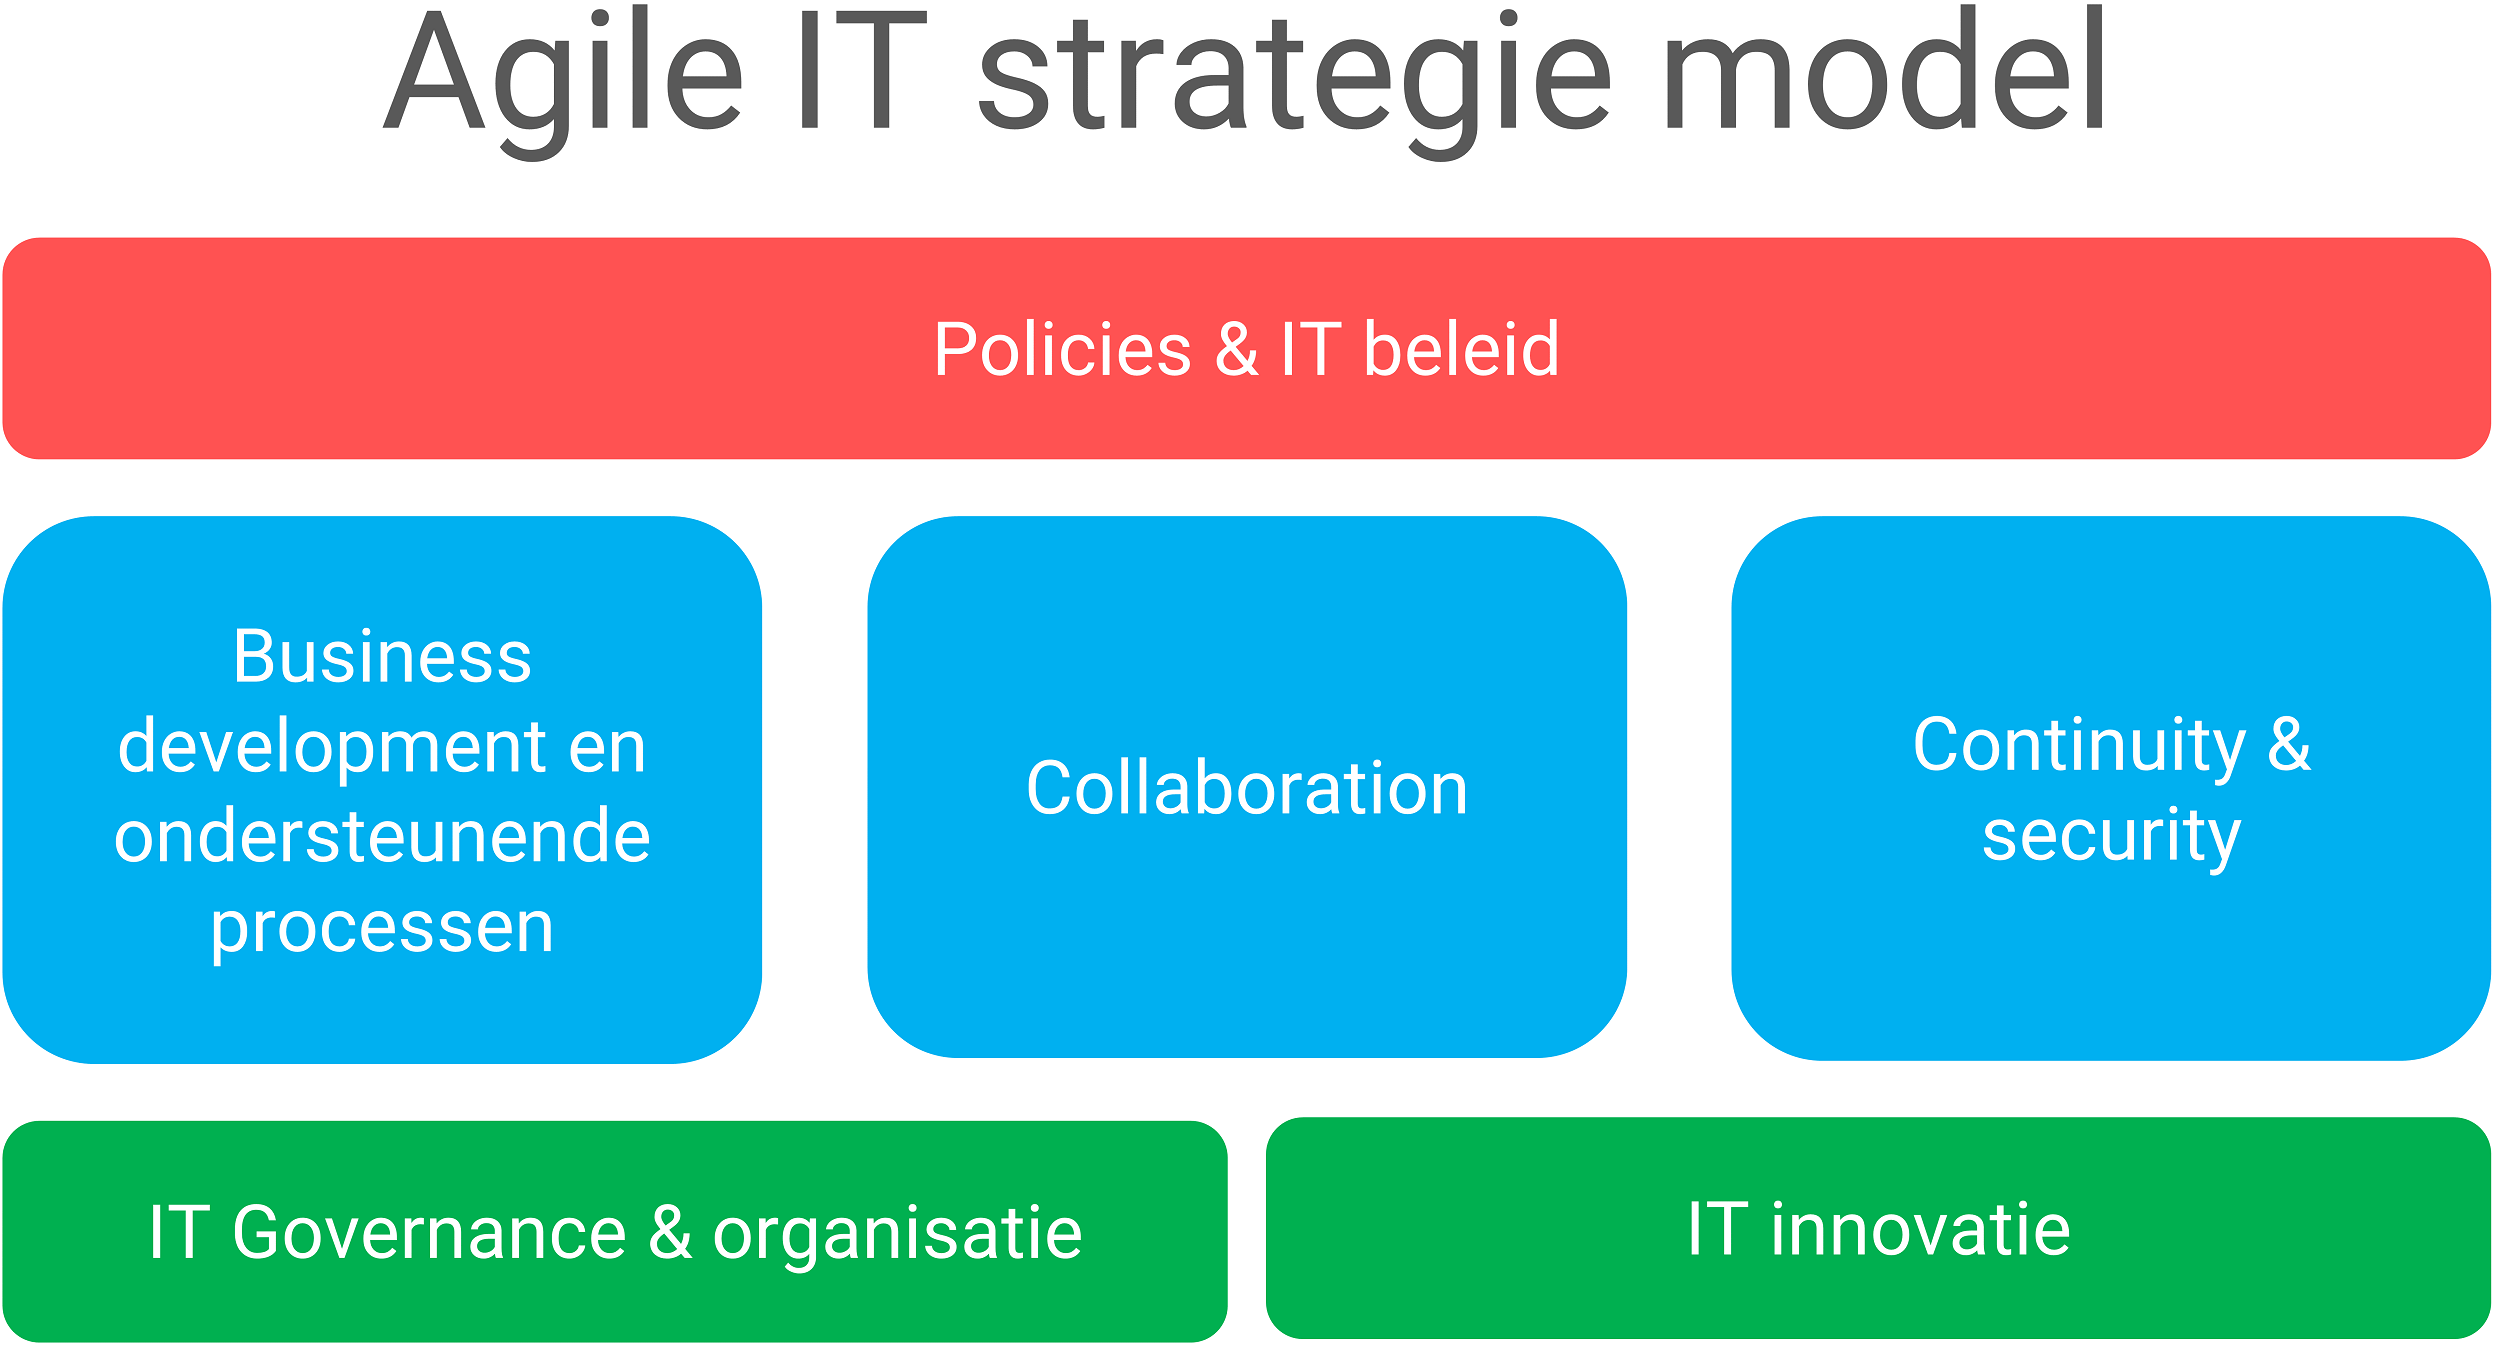 Agile IT strategie modelmatig weergegeven